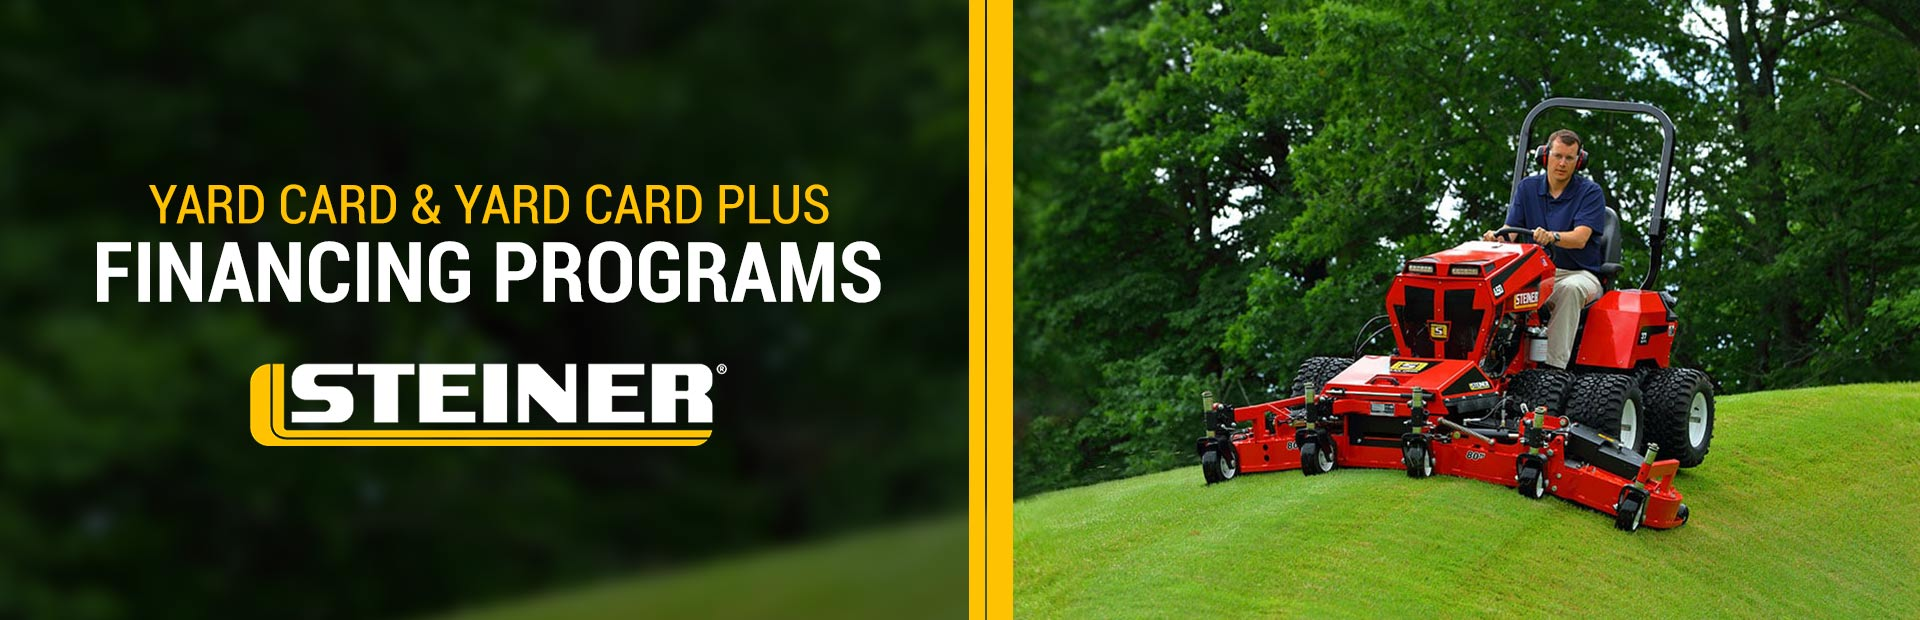 Steiner: Yard Card and Yard Card Plus Financing Programs